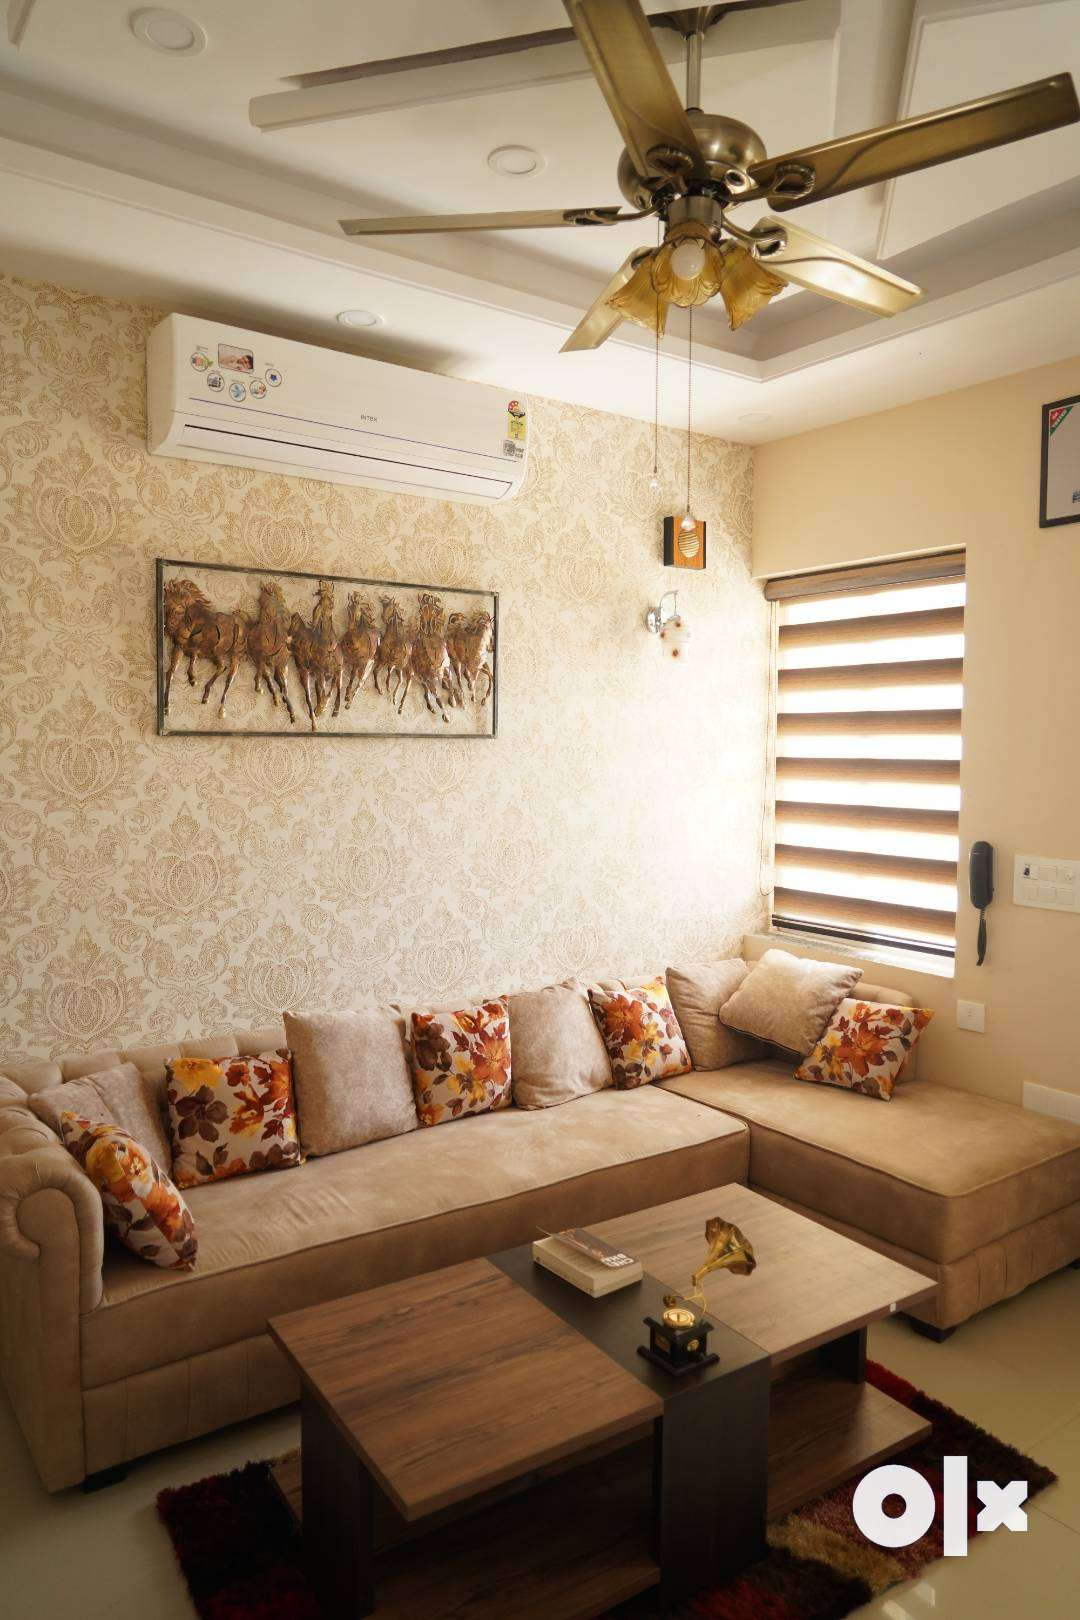 Villa Project situated at Ajmer - Jaipur - Express